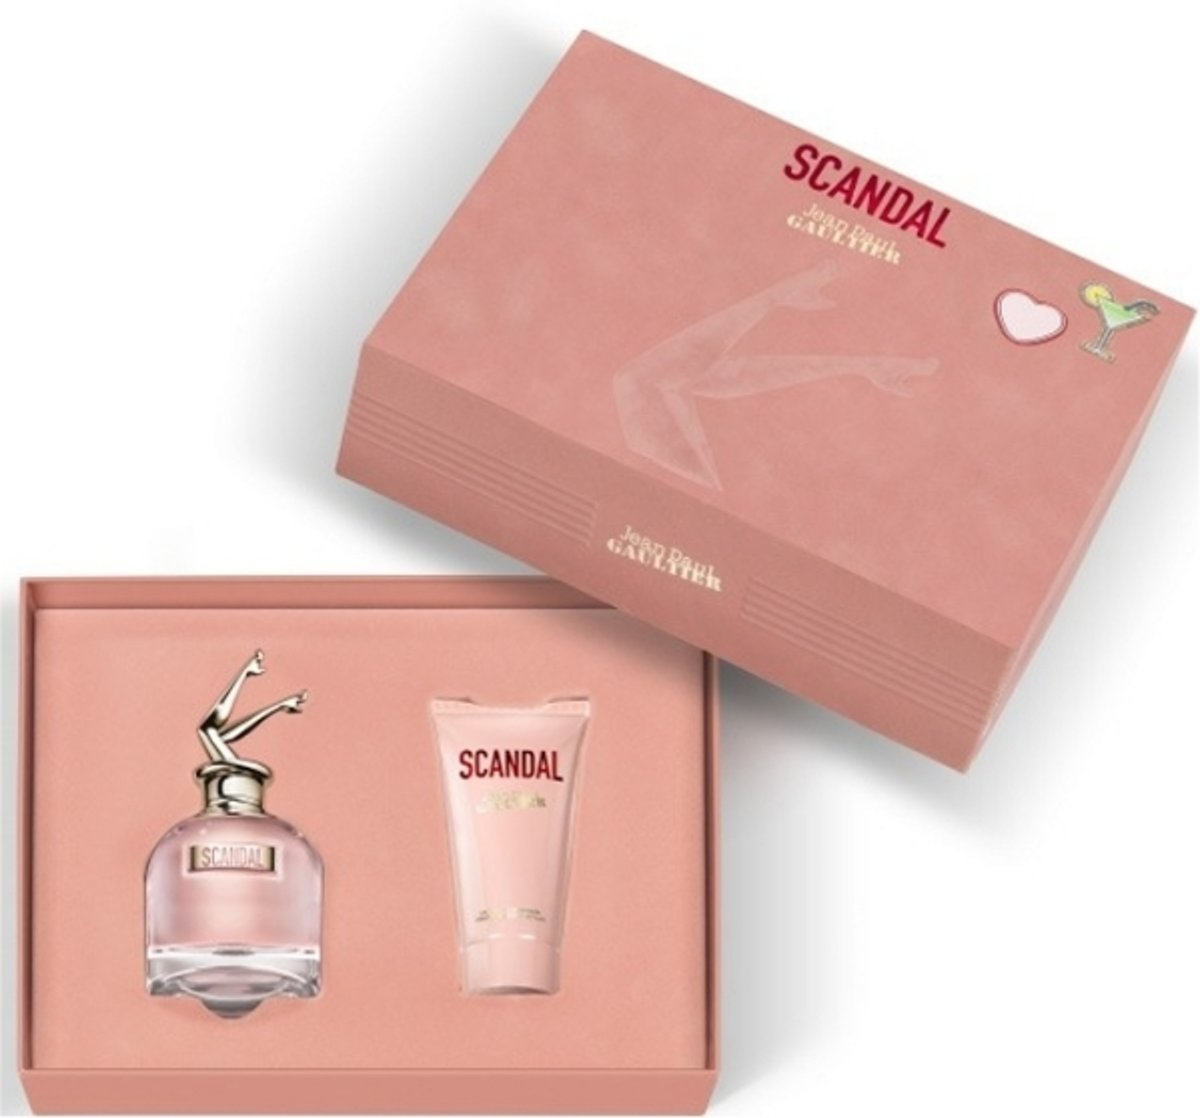 Jean Paul Gaultier - Eau de parfum - Scandal 50ml eau de parfum + 75ml bodylotion - Gifts ml